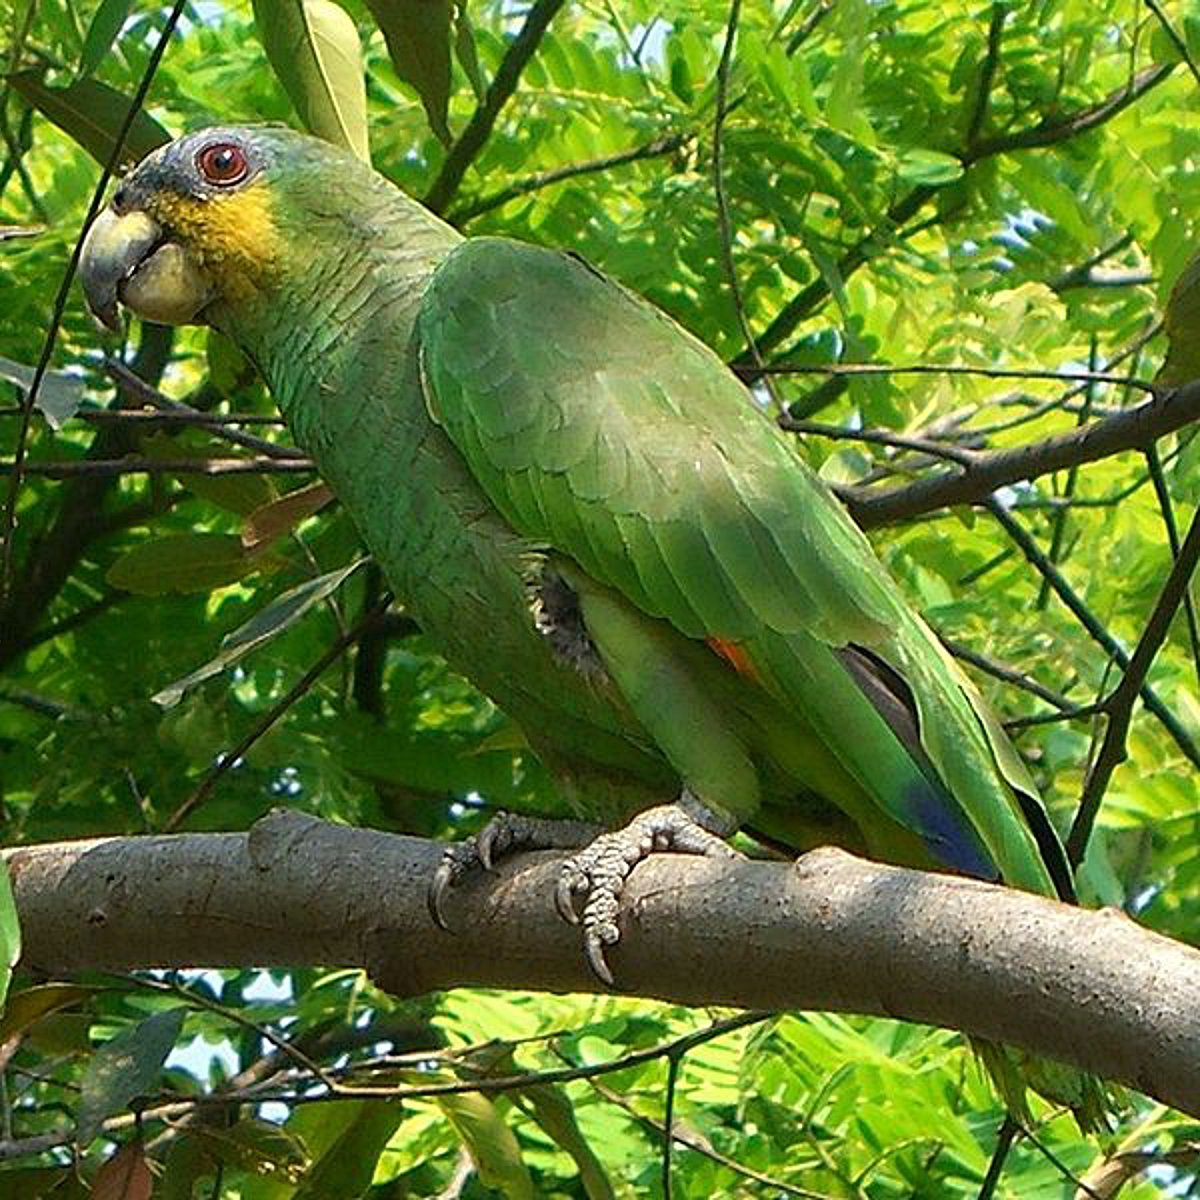 Do you know this parrot? Escaped amazonian bird ruffles feathers in Dartford